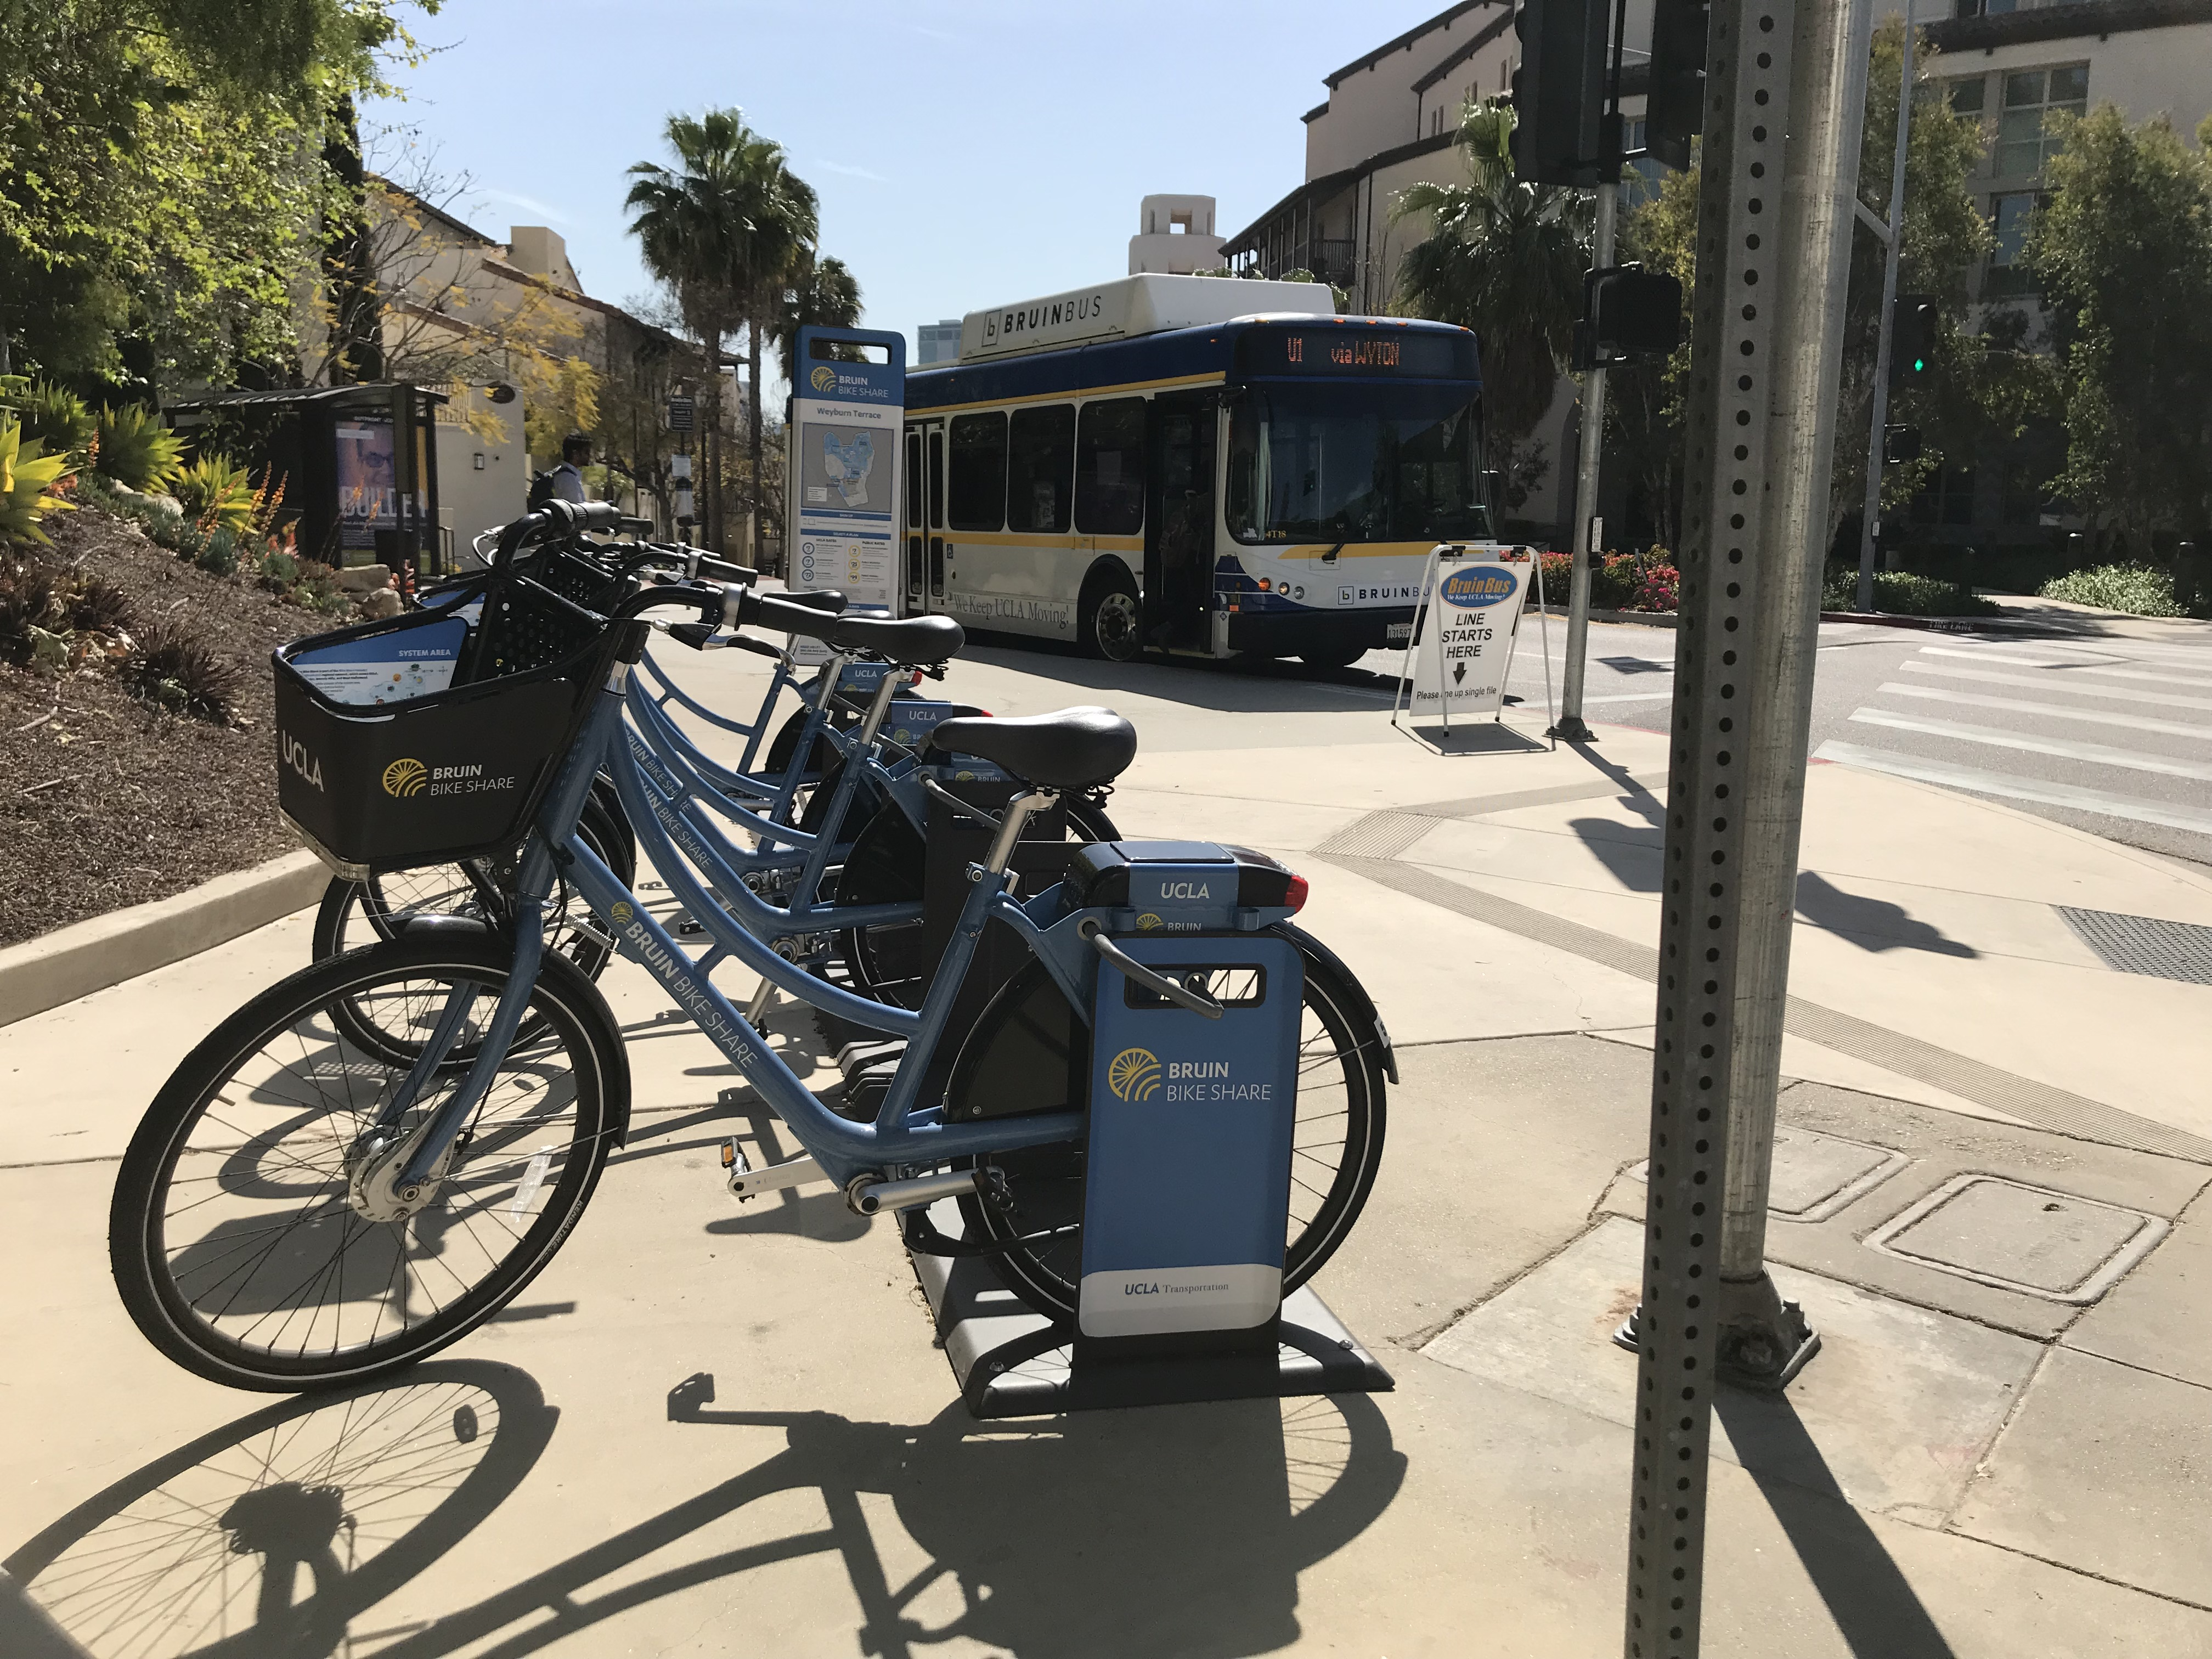 Bruin bikes and bus